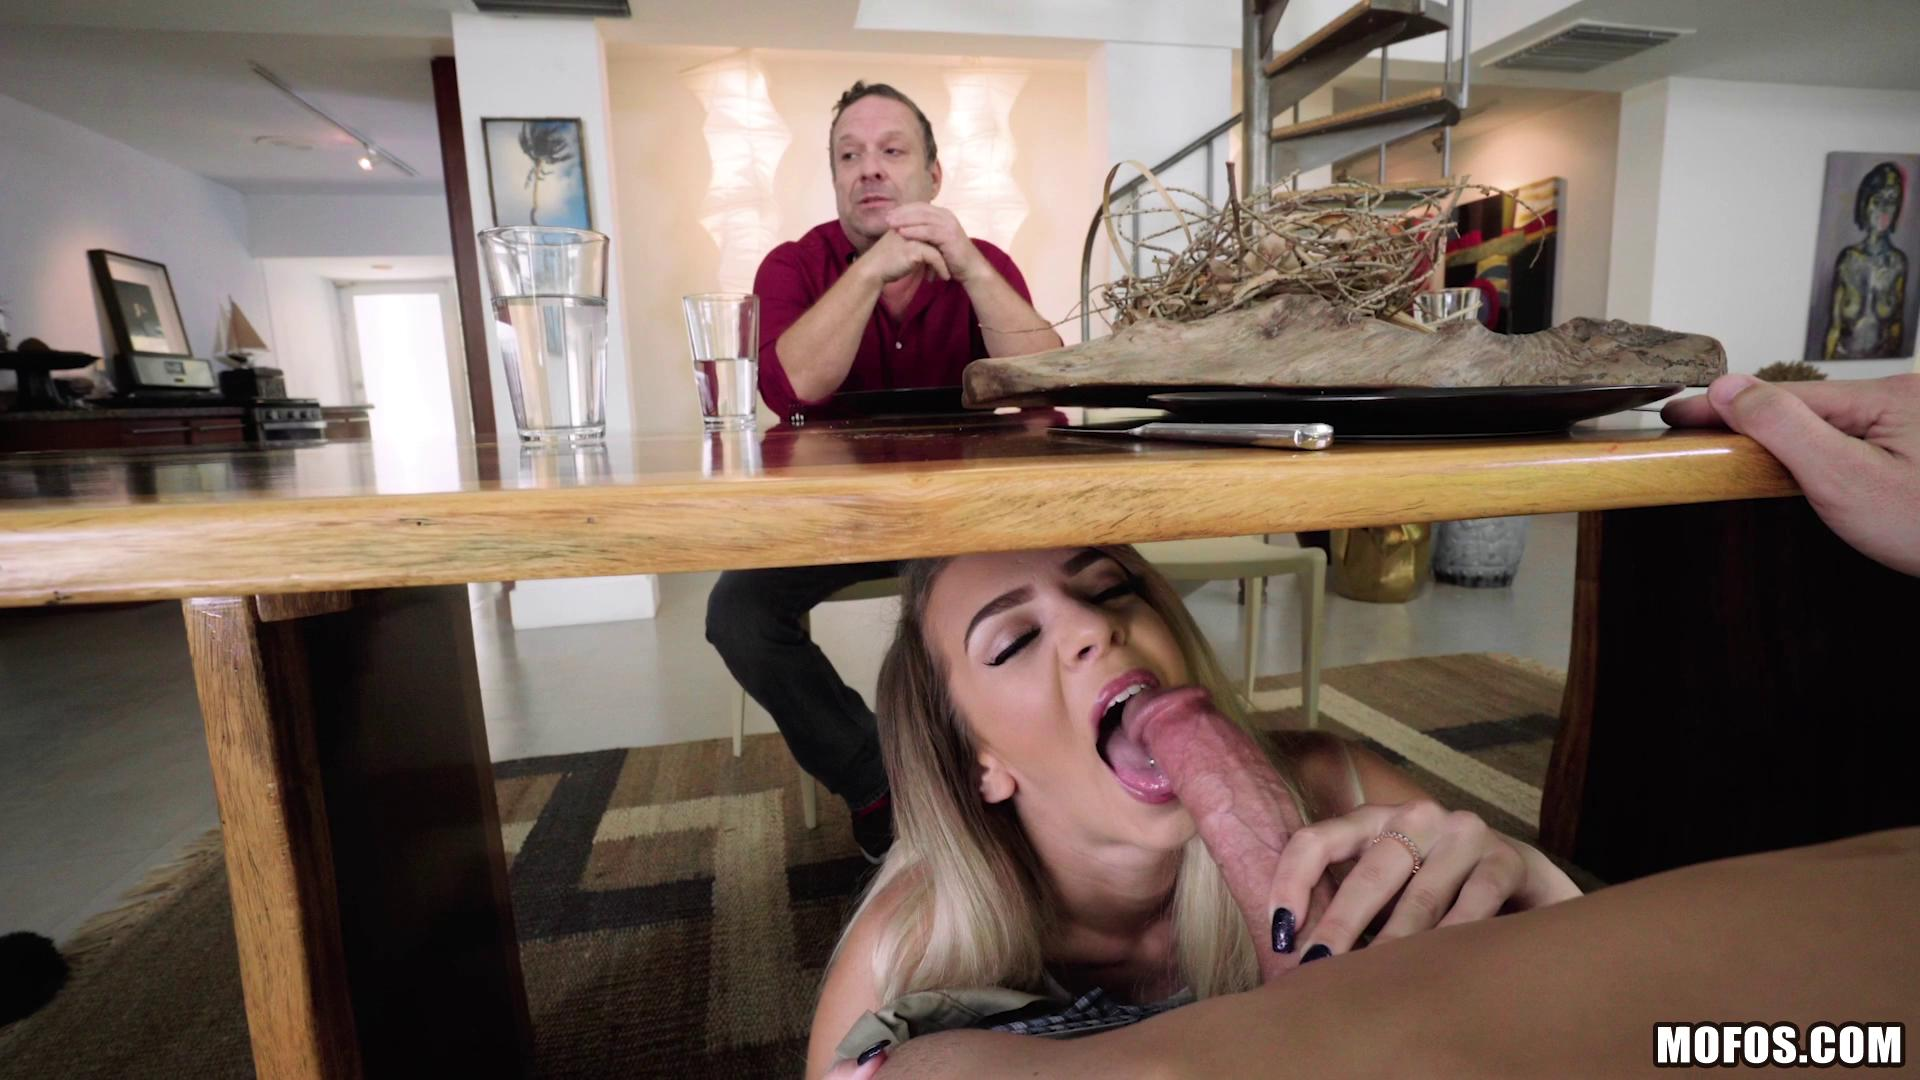 IKnowThatGirl – Tiffany Watson Under The Table